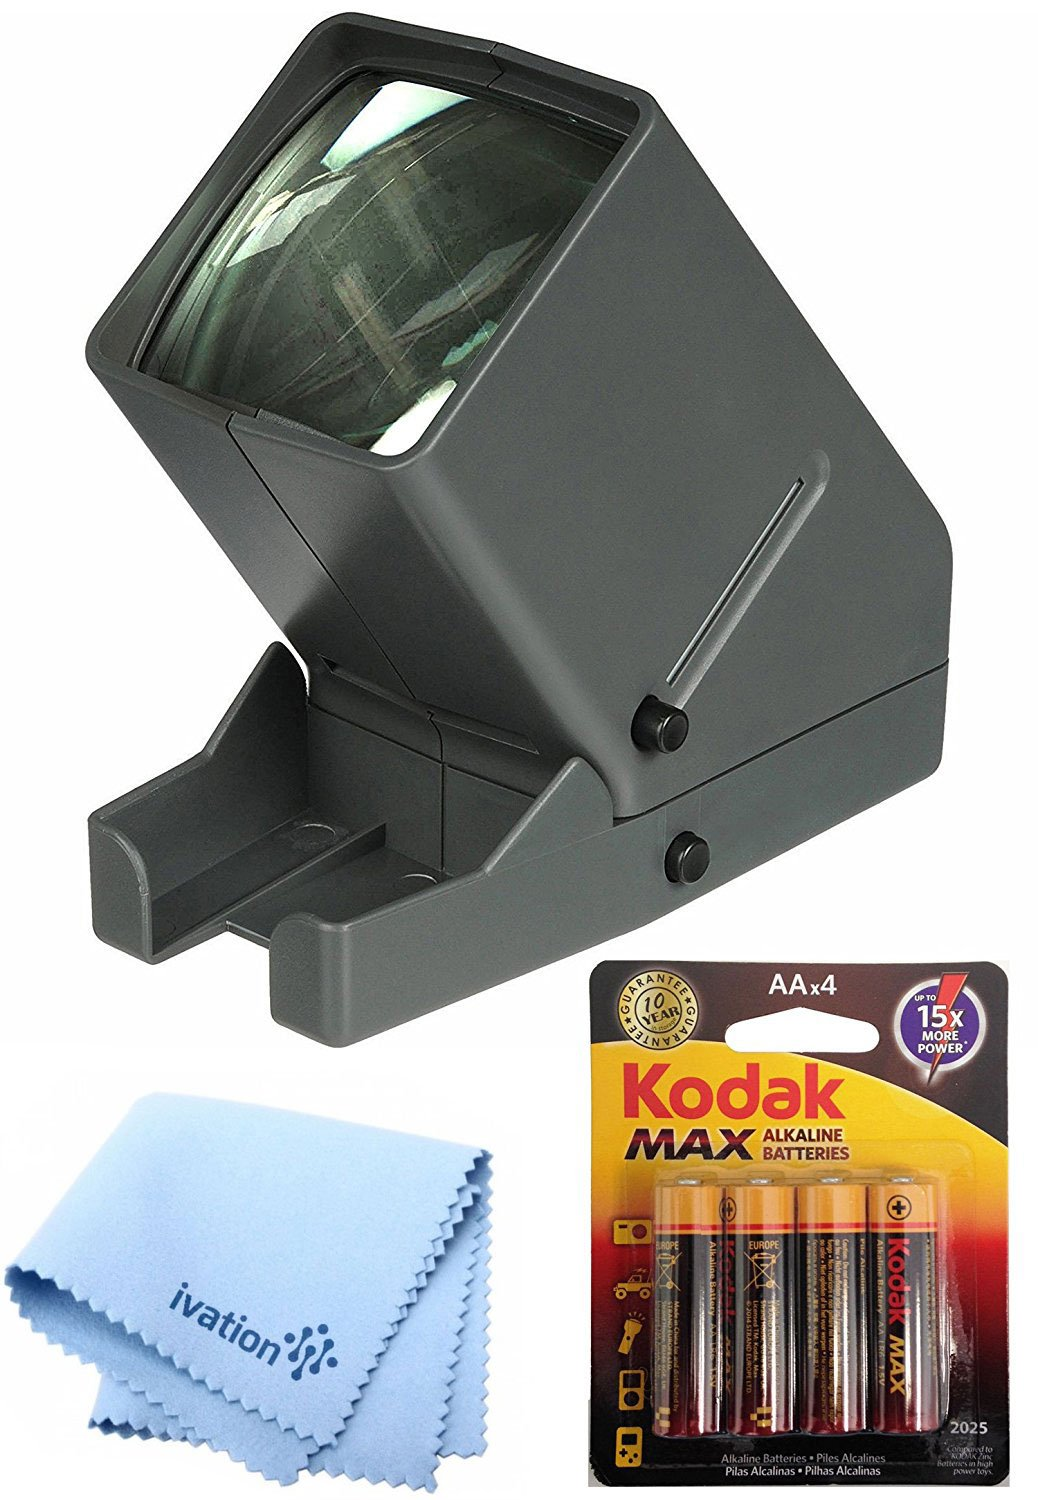 Calumet Medalight 35mm Desk Top Portable LED Negative and Slide Viewer + AA Batteries + Ivation MicroFiber Cleaning Cloth